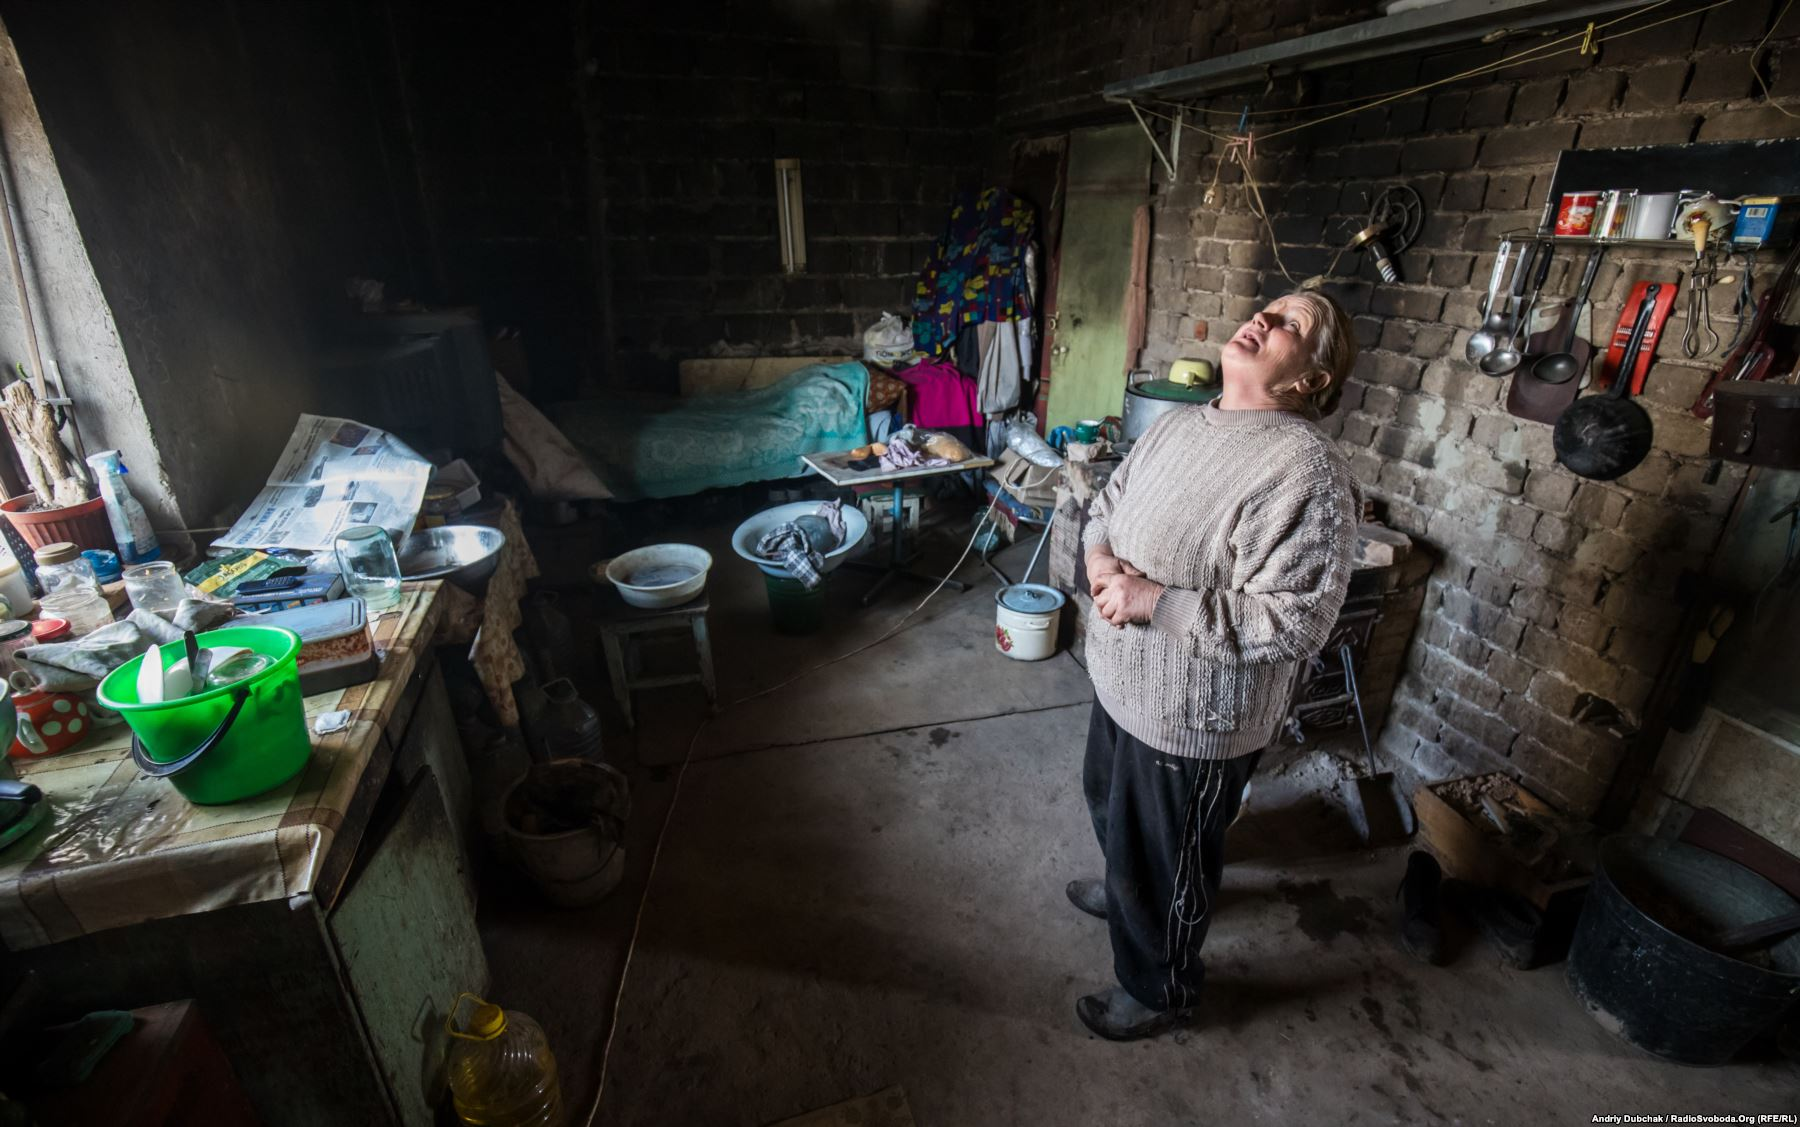 Zoya Kral lost her husband and son during the fighting. She now lives alone in Vodyane, surviving on handouts from the Ukrainian military and the Red Cross. Photo by: Andriy Dubchak